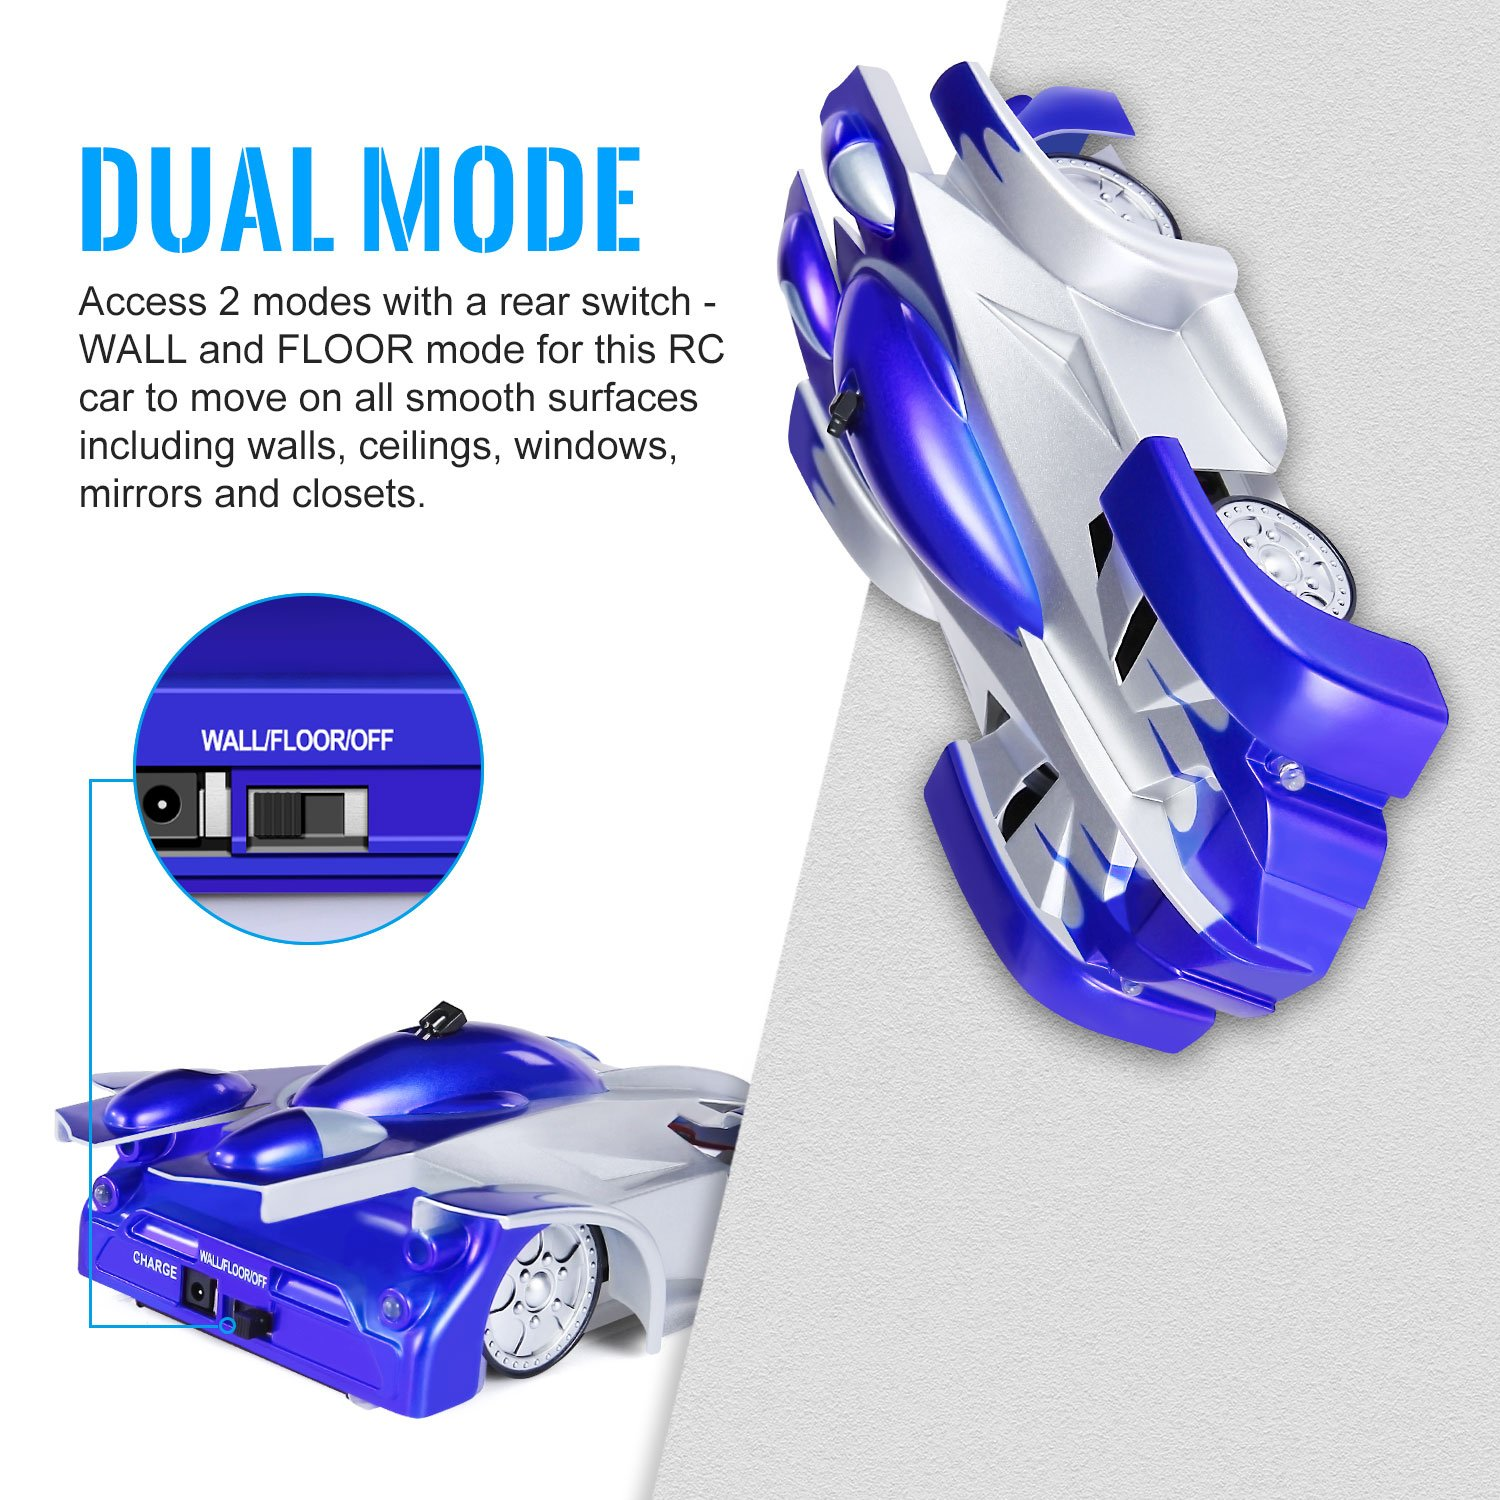 SGILE Remote Control Car Toy, Wall Climbing RC Car - Dual Mode 360° Rotating LED Head Stunt Car, Birthday Present Gift for Kids, Blue by SGILE (Image #1)